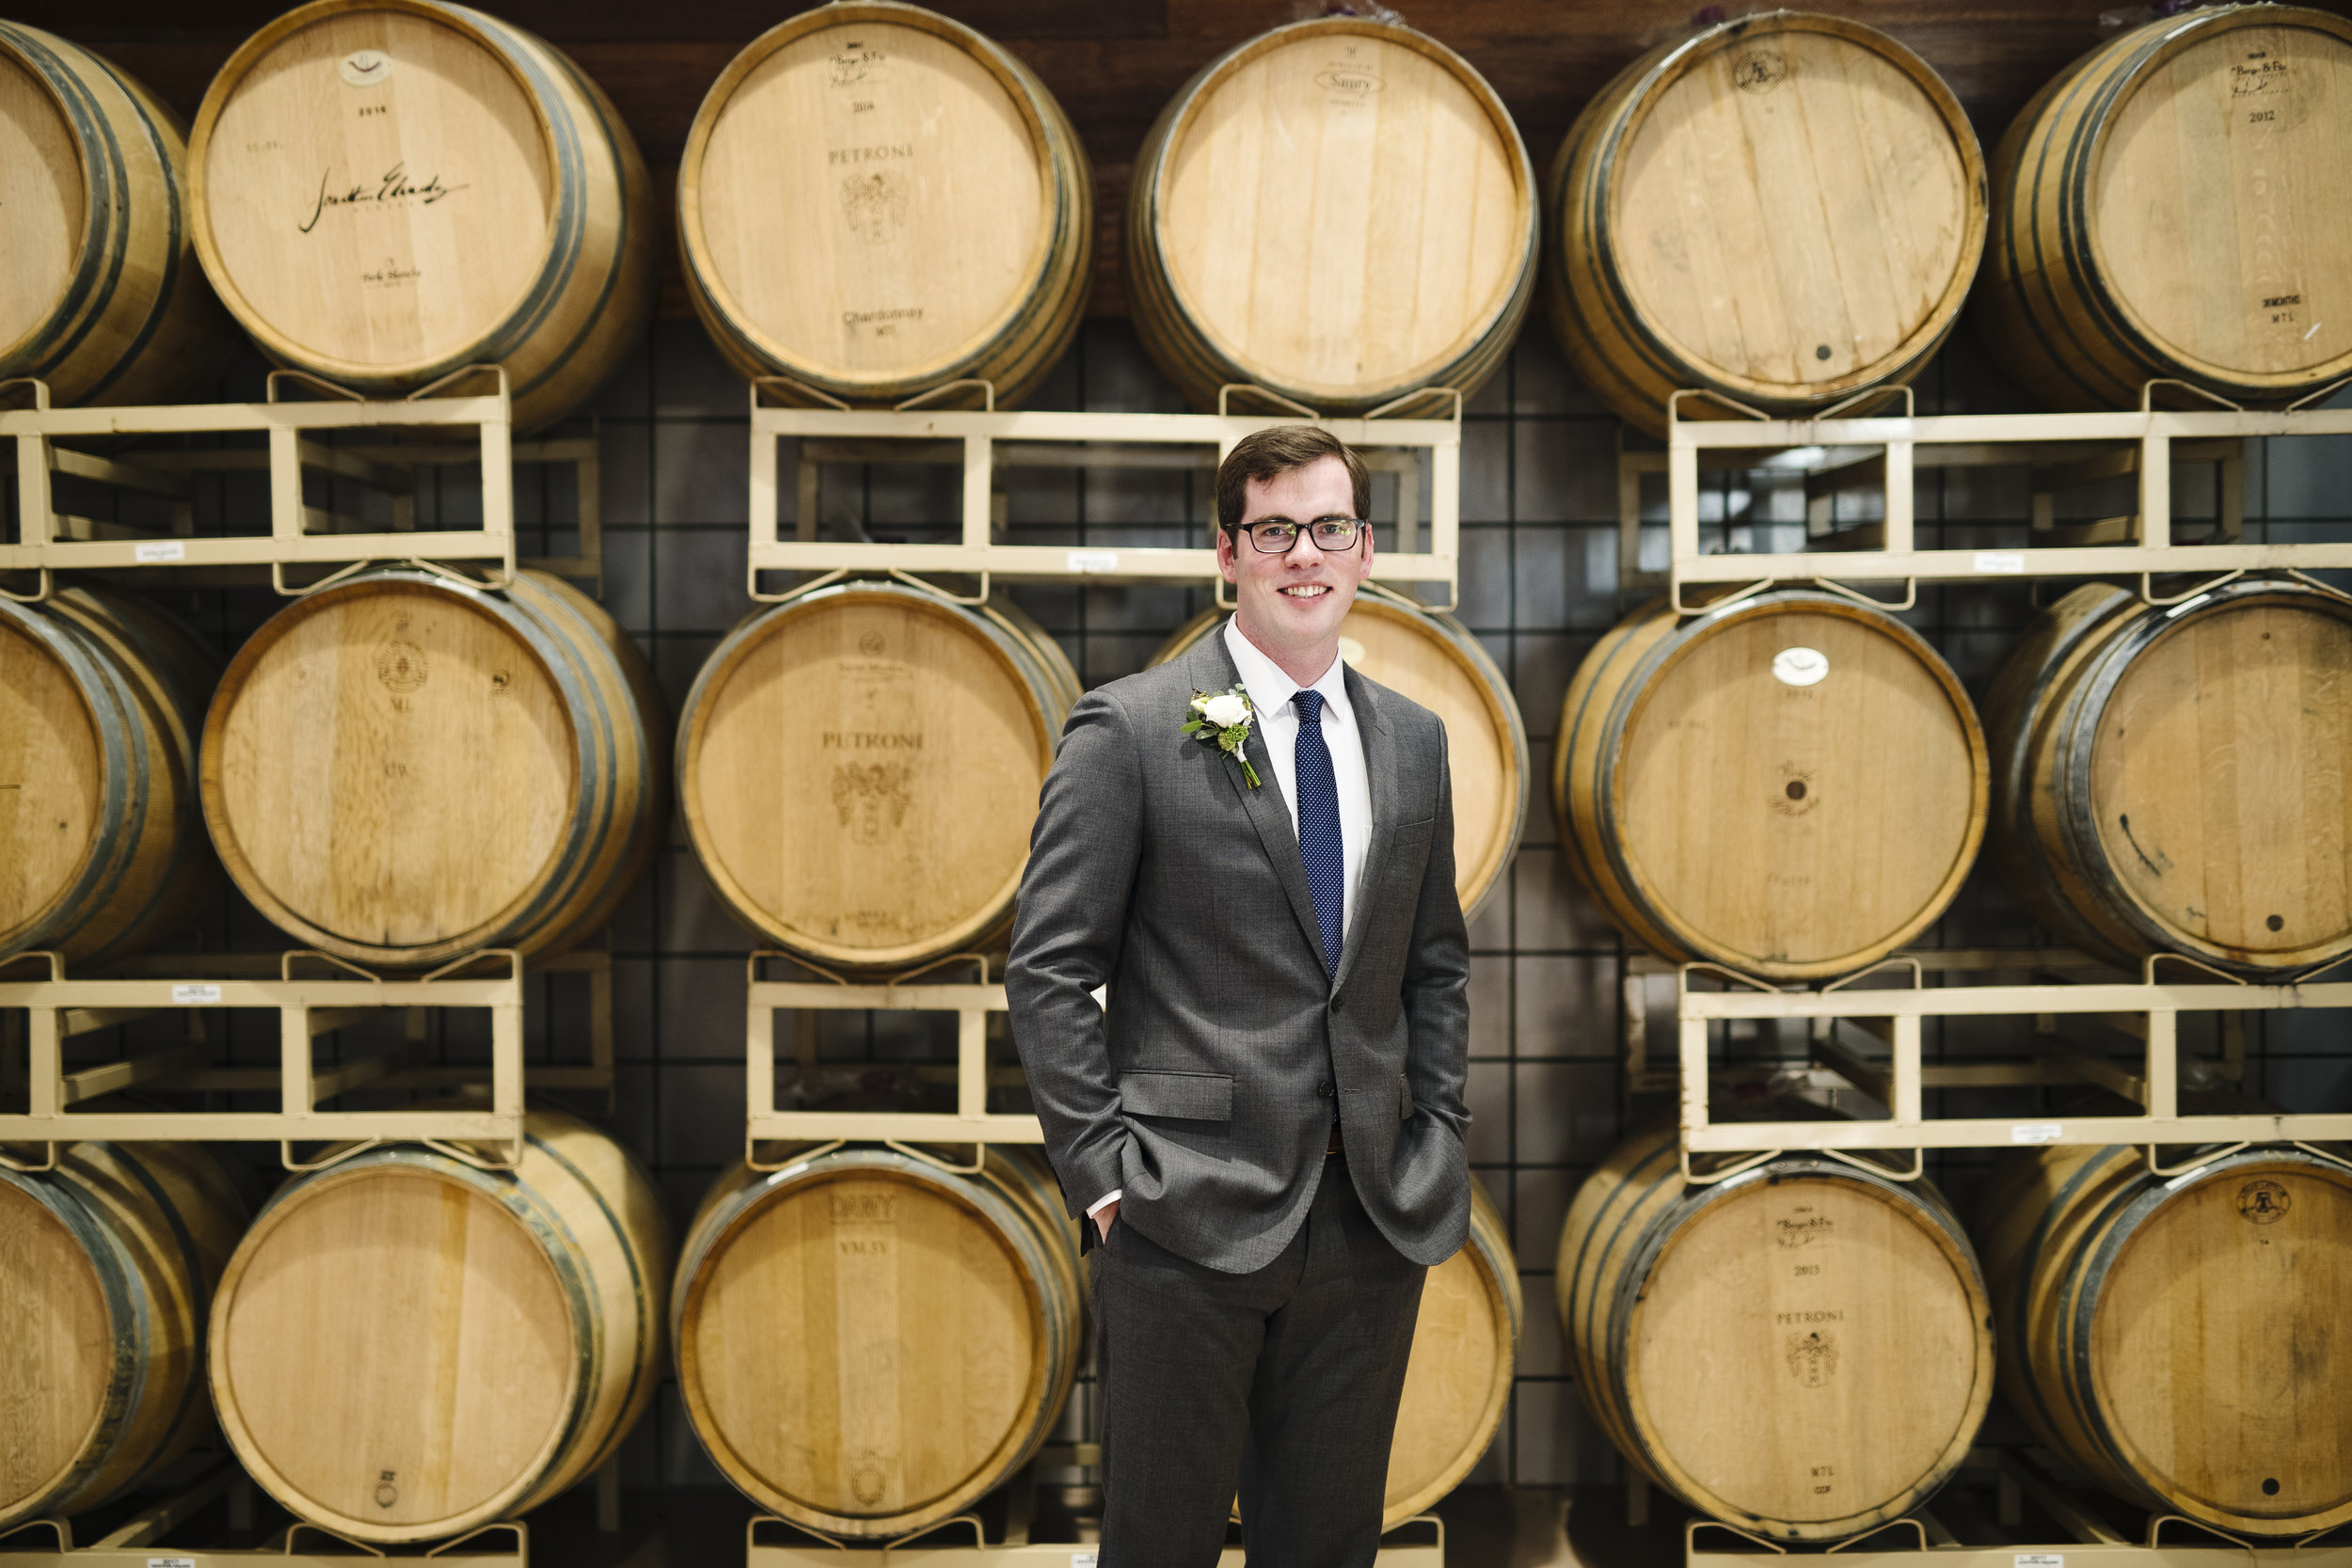 Groom photos in front of wine barrels at jonathan edwards winery - Pearl Weddings & Events